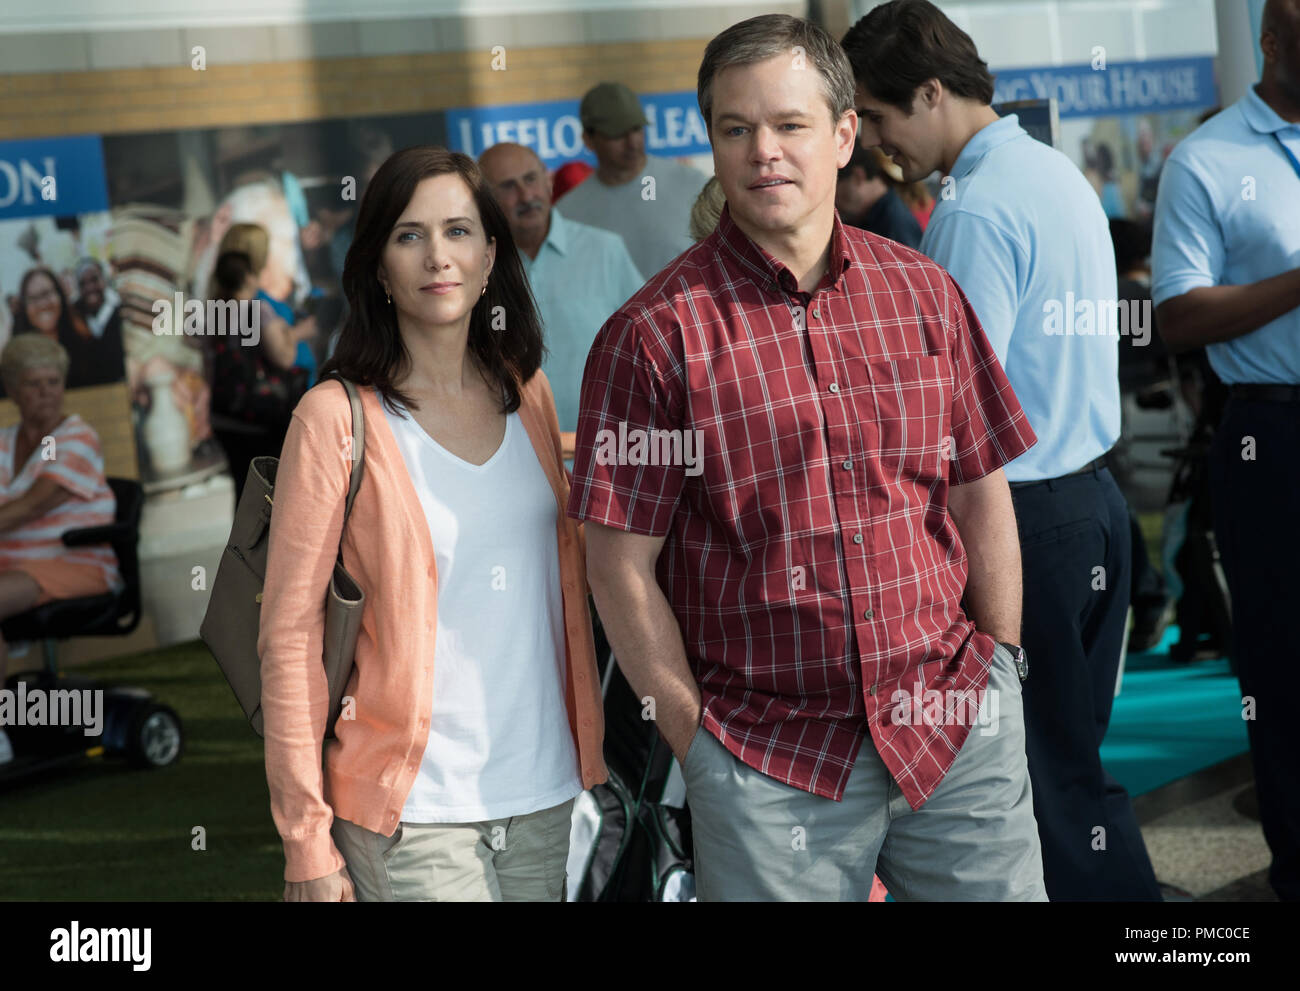 Kristen Wiig plays Audrey and Matt Damon plays Paul in Downsizing from Paramount Pictures. (2017) - Stock Image